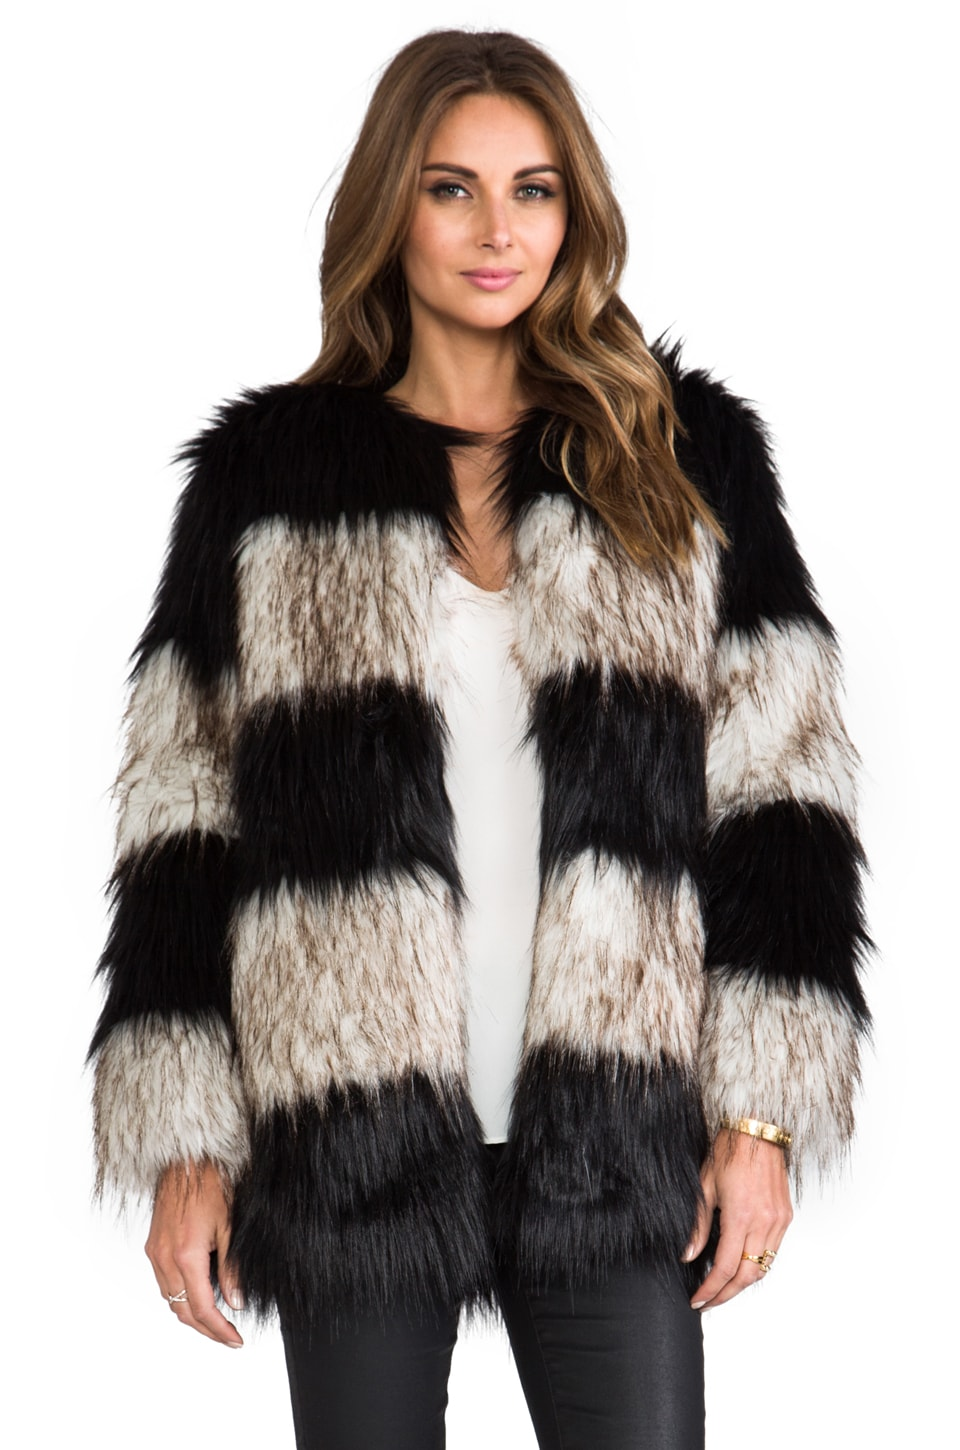 BSABLE Riri Faux Fur Jacket in Black/White Mix